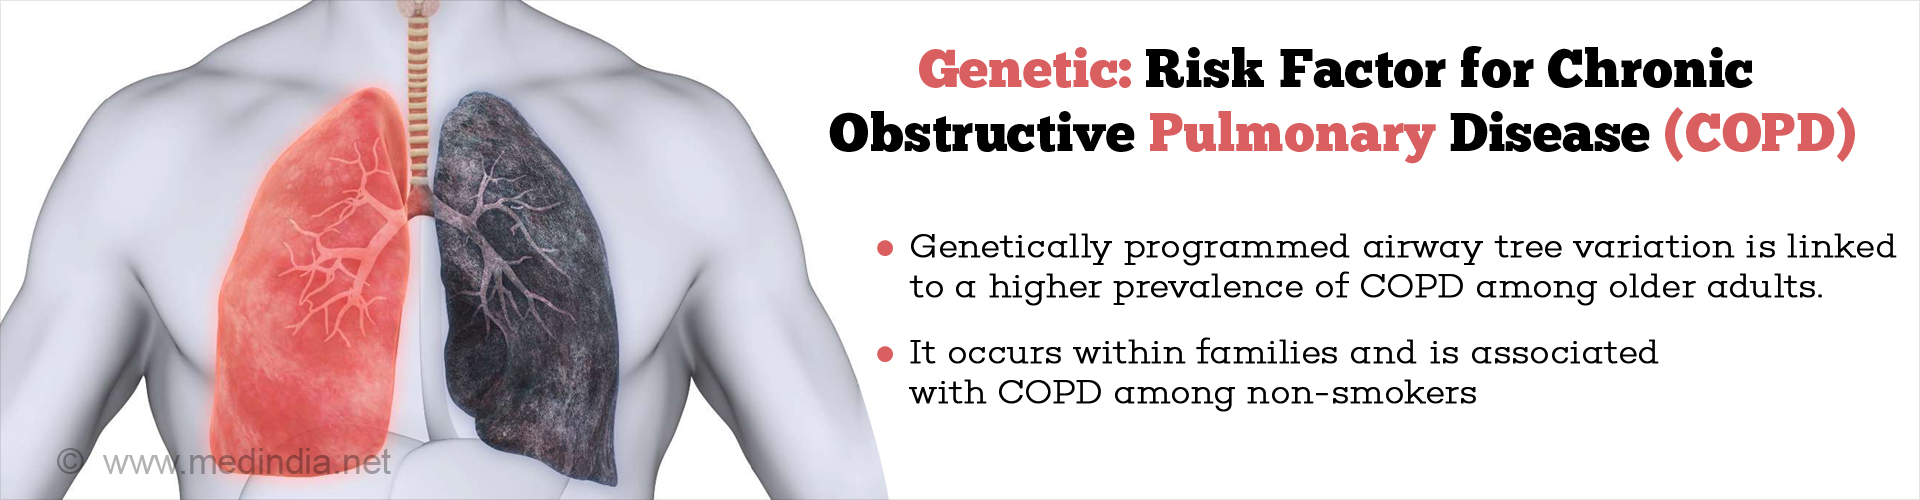 genetic:risk factor for chronic obstructive pulmonary disease (COPD)